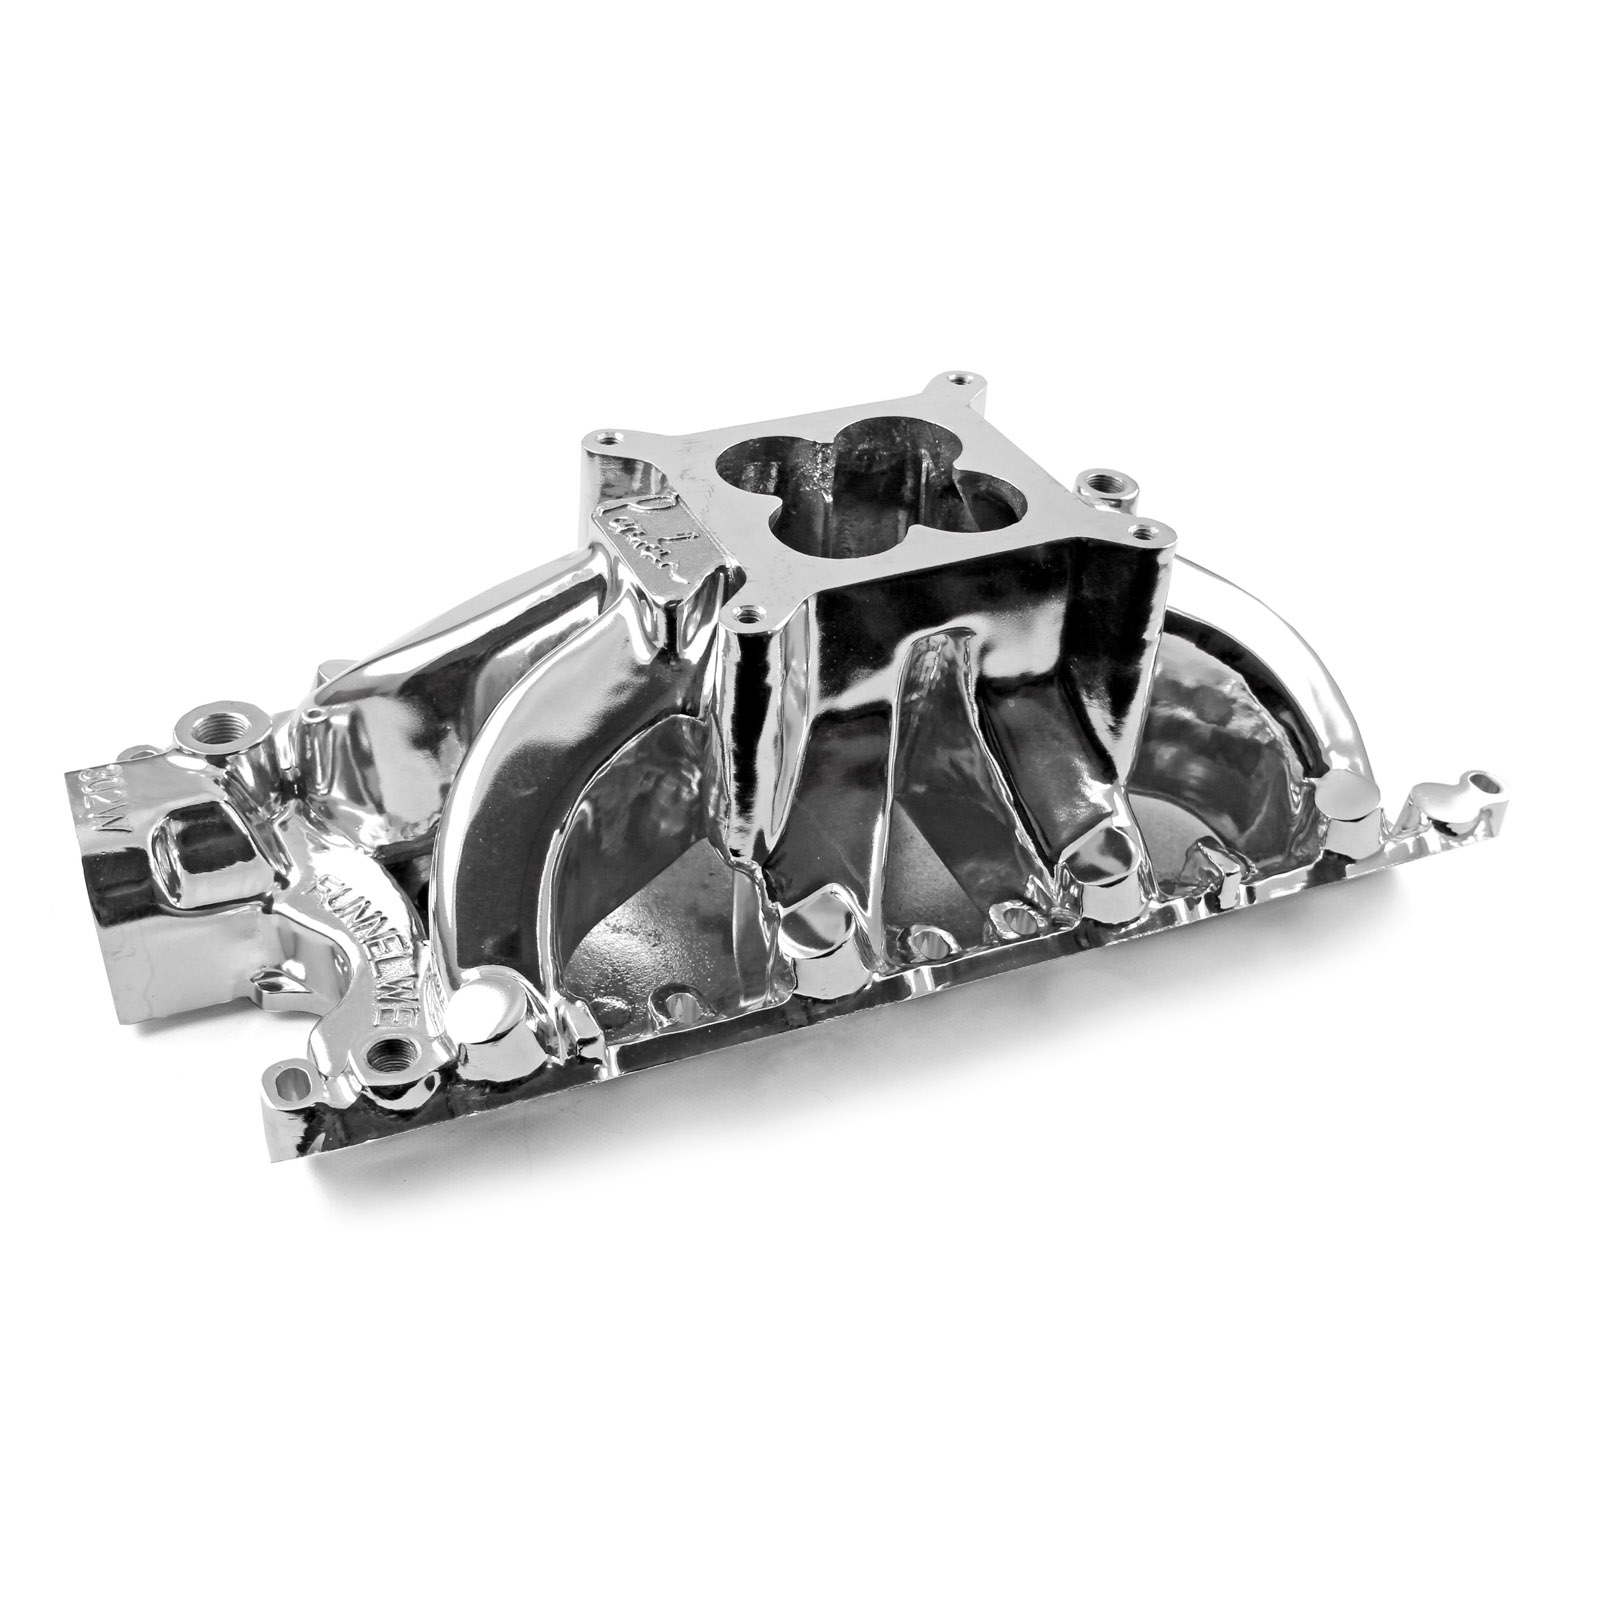 Ford SB 260 289 302 Windsor Parker Style High Rise Intake Manifold Polished